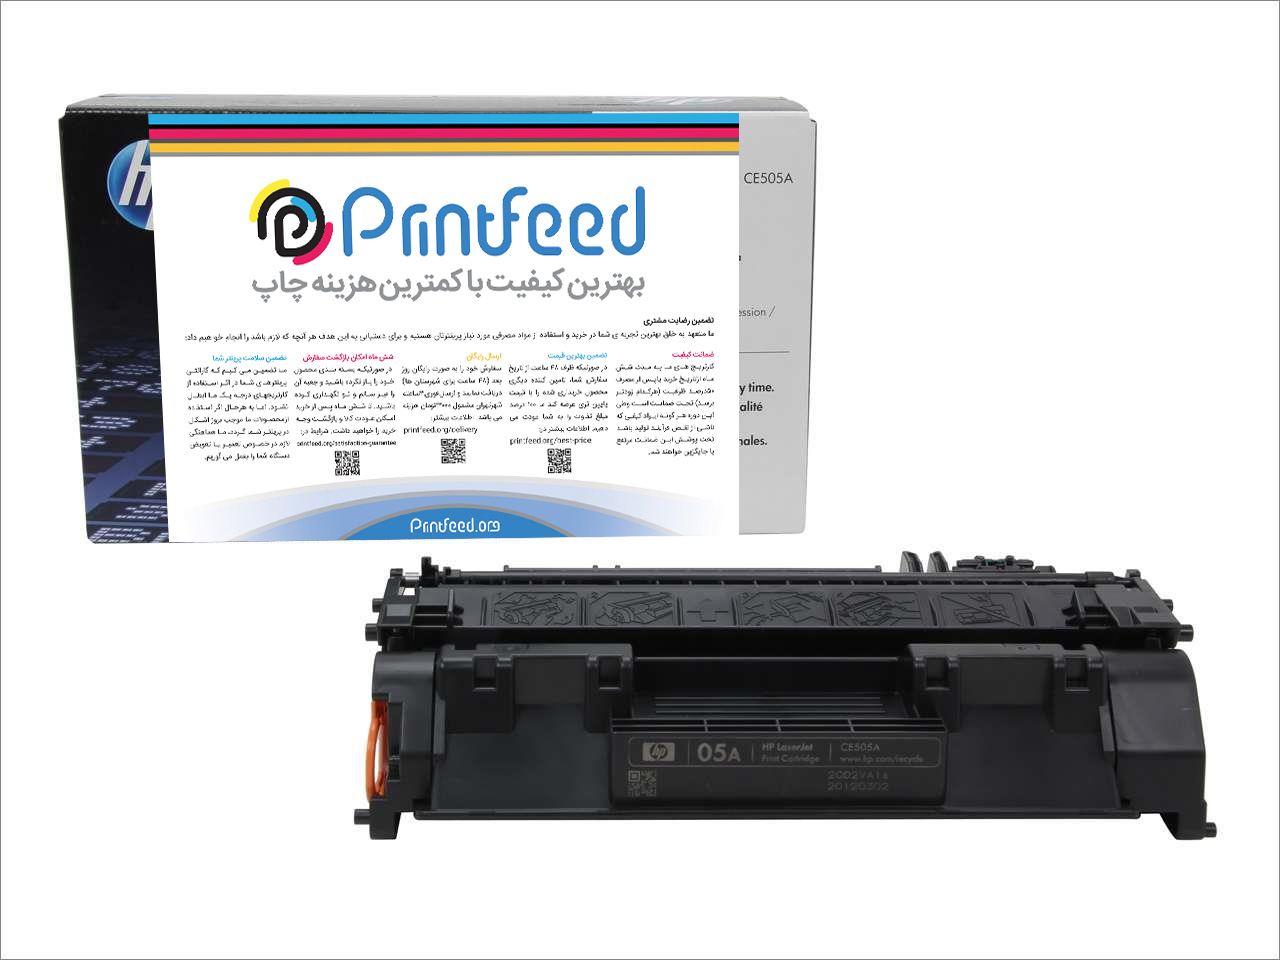 HP Laserjet 05A Black compatible cartridge